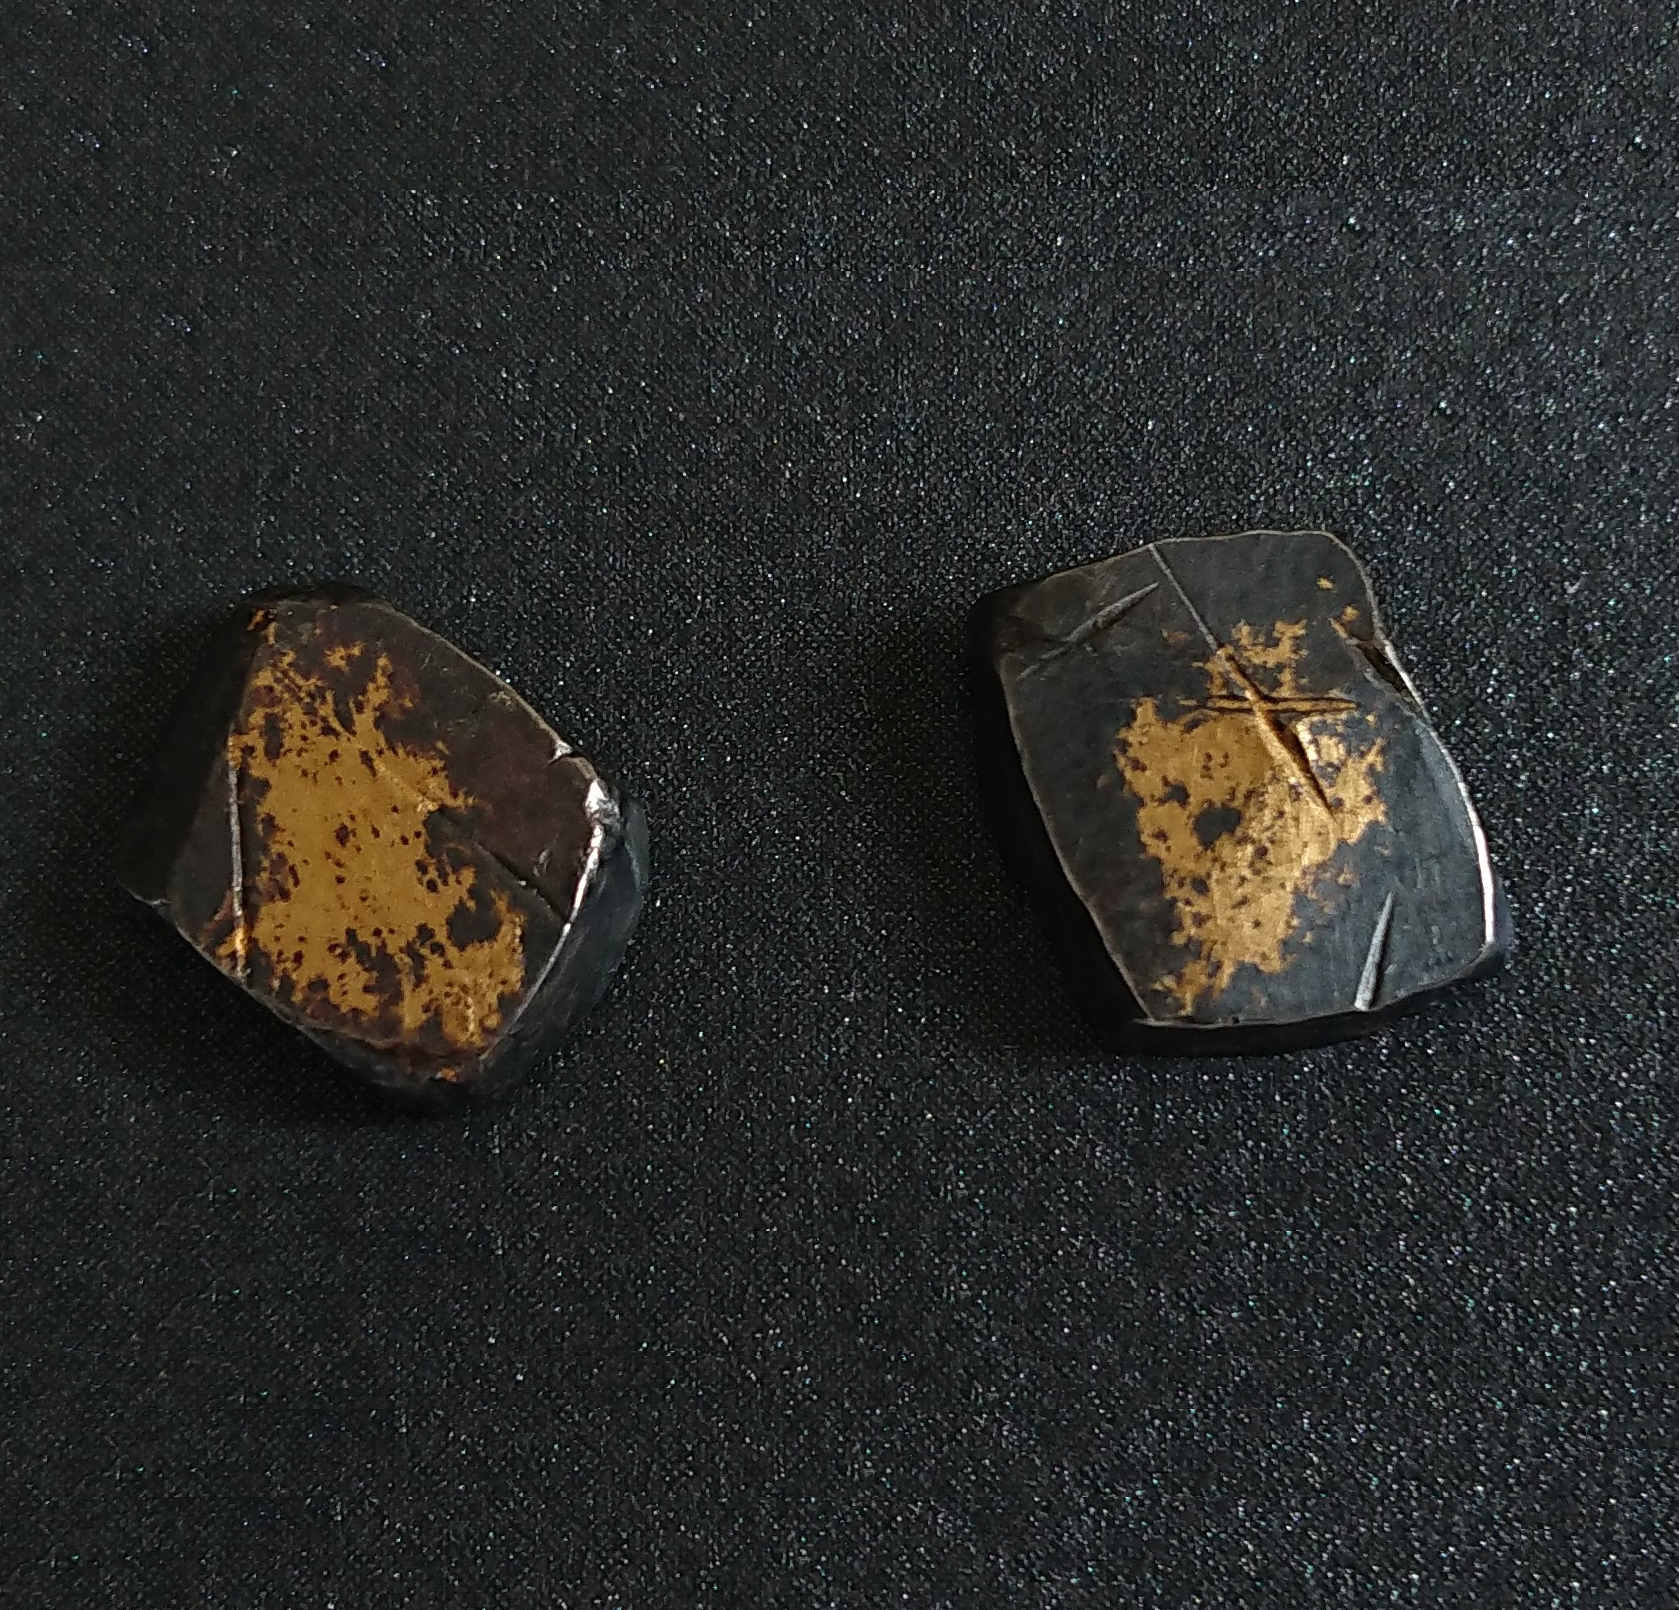 Square Sterling Silver Stud Earring Pair, 24ct Gold Foil And Oxidized By R-Process